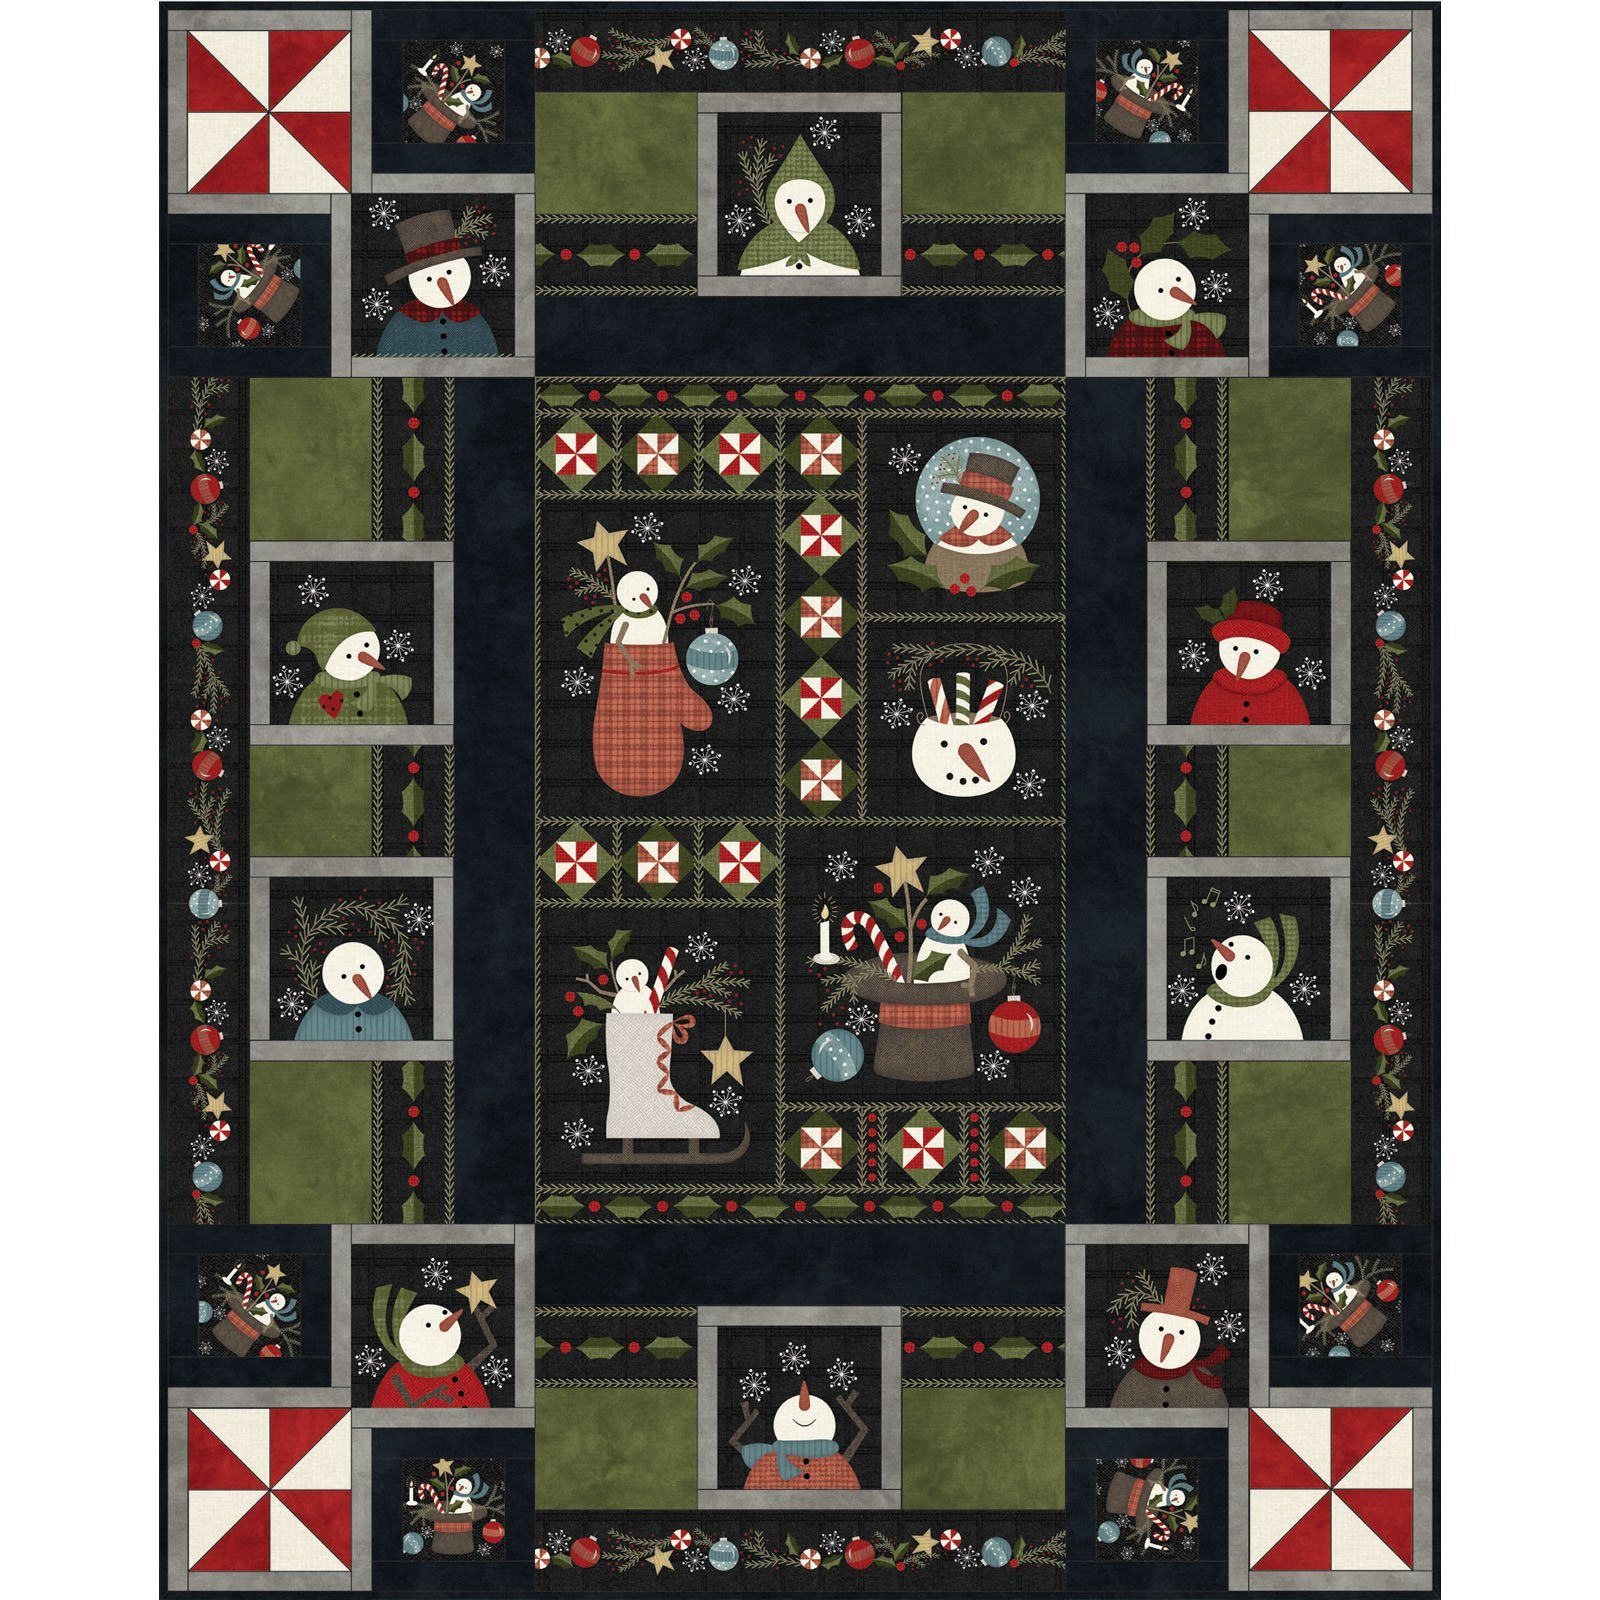 EESC-KITMASSNDF - SNOWDAYS FLANNEL - SNOWDAYS FLANNEL QUILT KIT 63 x 78 - ARRIVING IN AUGUST 2021